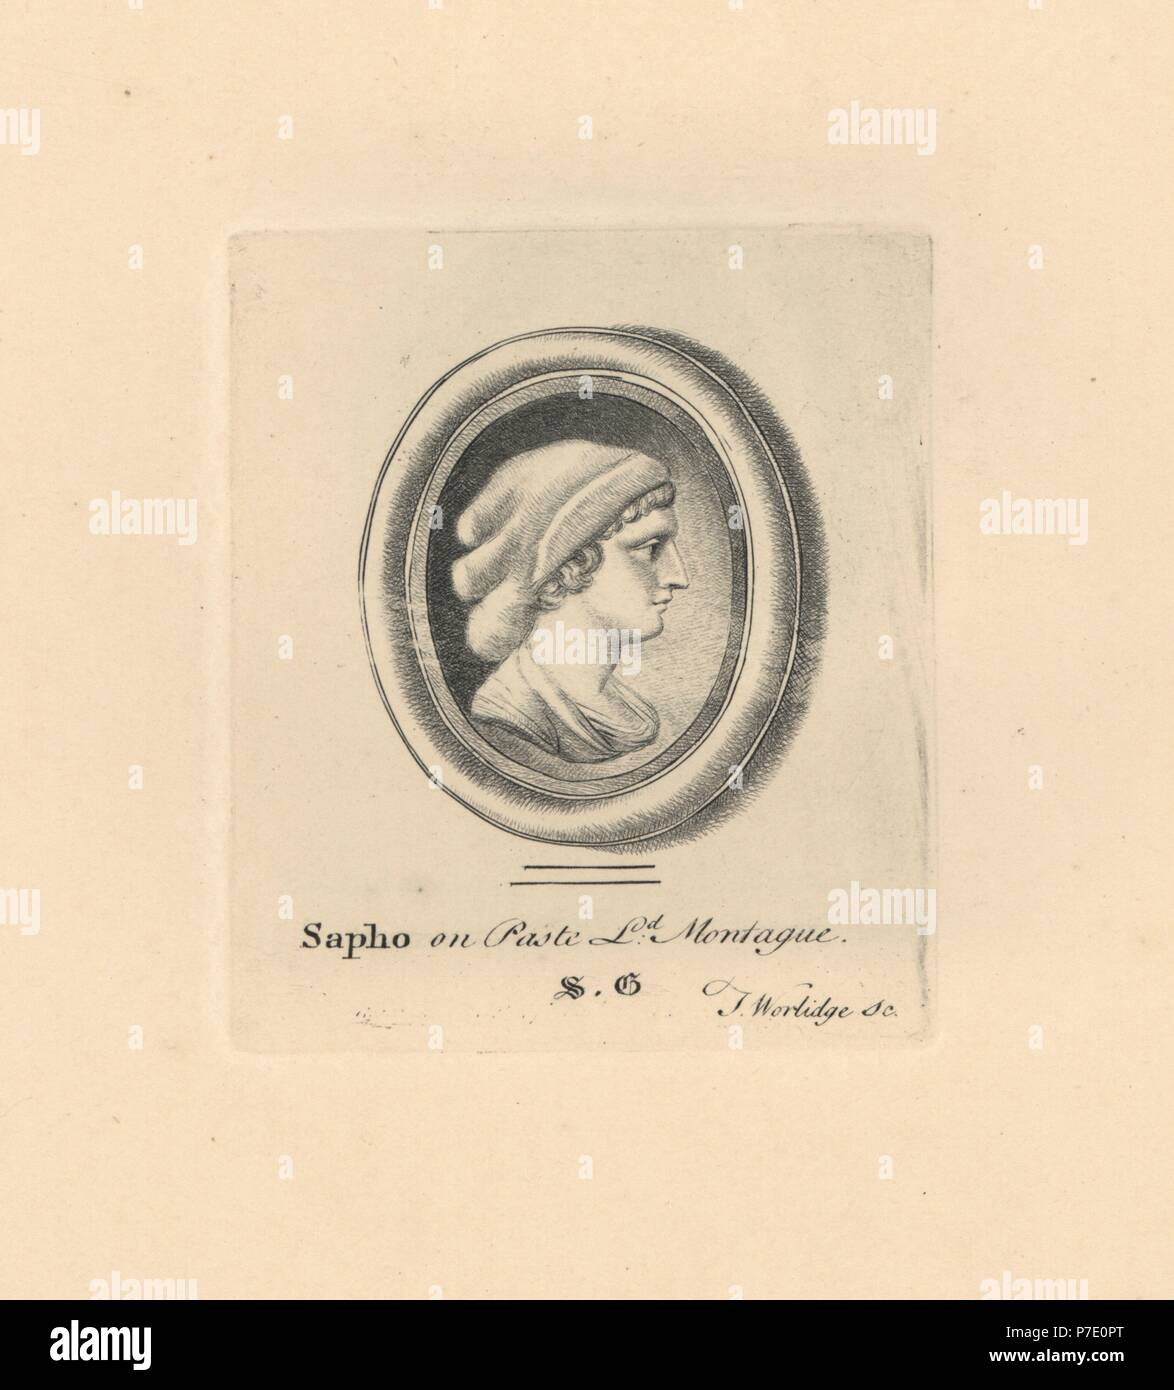 Portrait of Sapho or Sappho, Greek lyric poet from the island of Lesbos, in woven cap, on paste in Lord Montague's collection. Copperplate engraving by Thomas Worlidge from James Vallentin's One Hundred and Eight Engravings from Antique Gems, 1863. - Stock Image